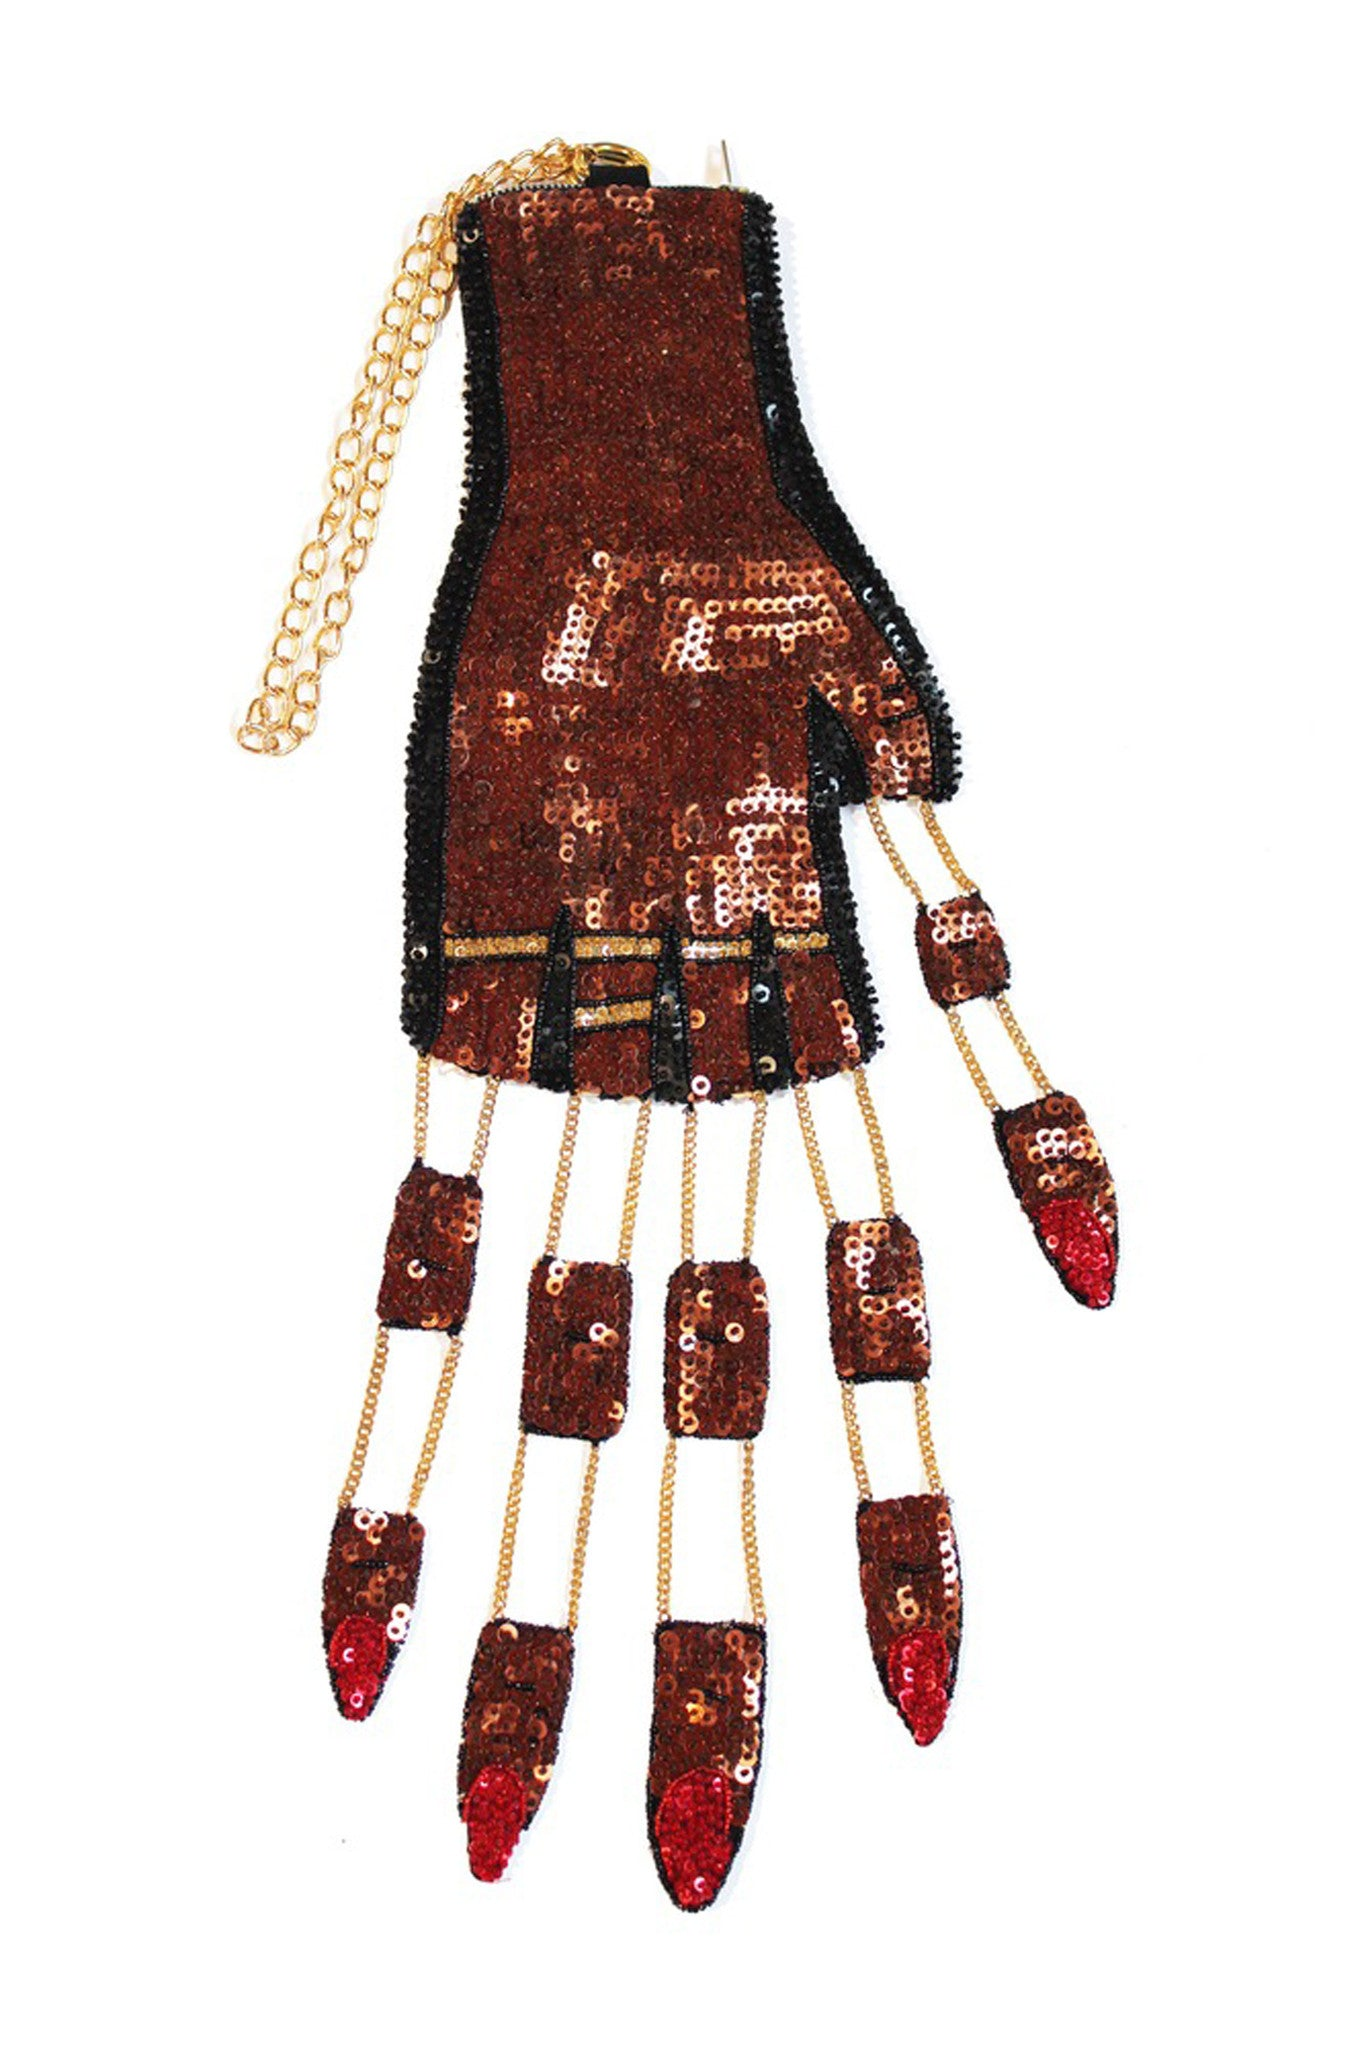 CUT OFF FINGERS HAND BAG